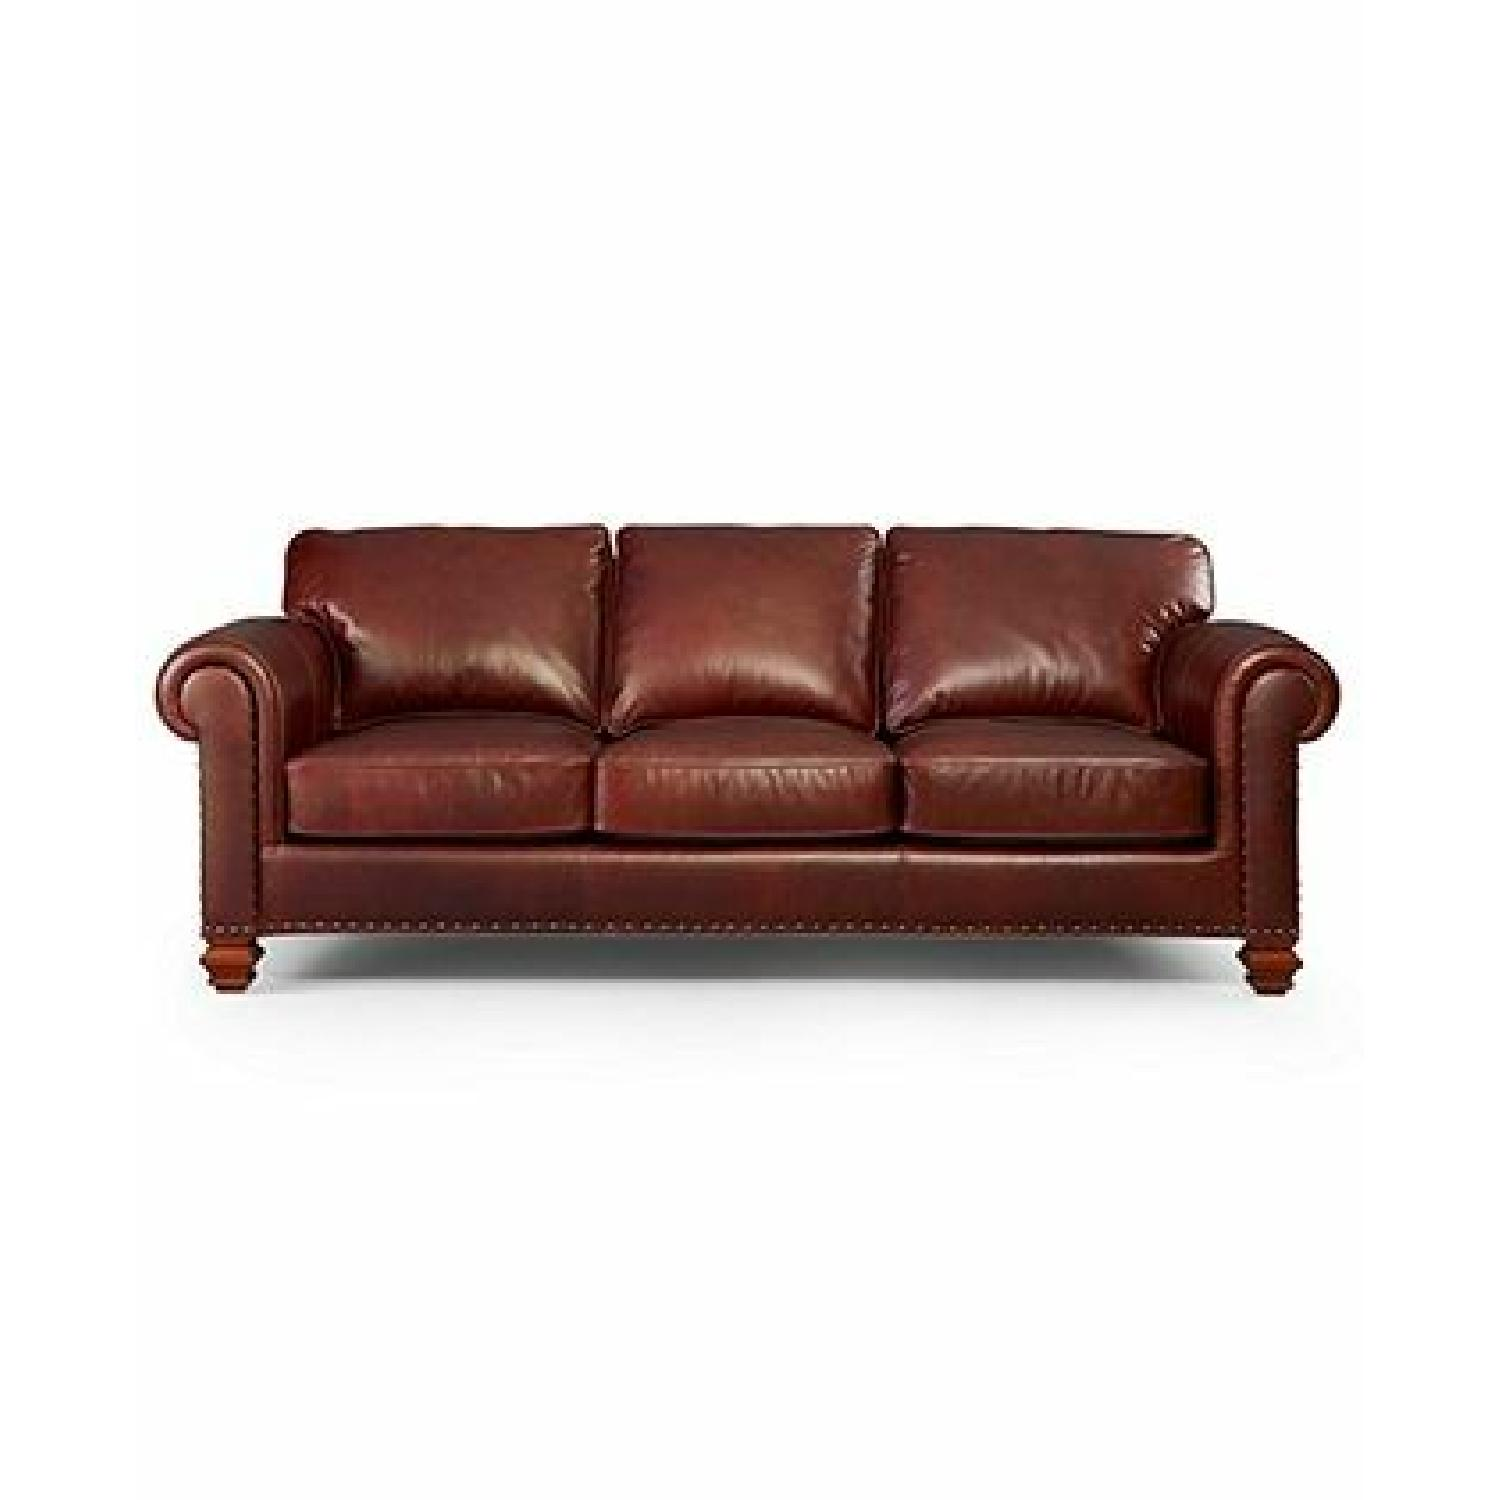 Macy's Ralph Lauren Stanmore Leather Sofa - image-0